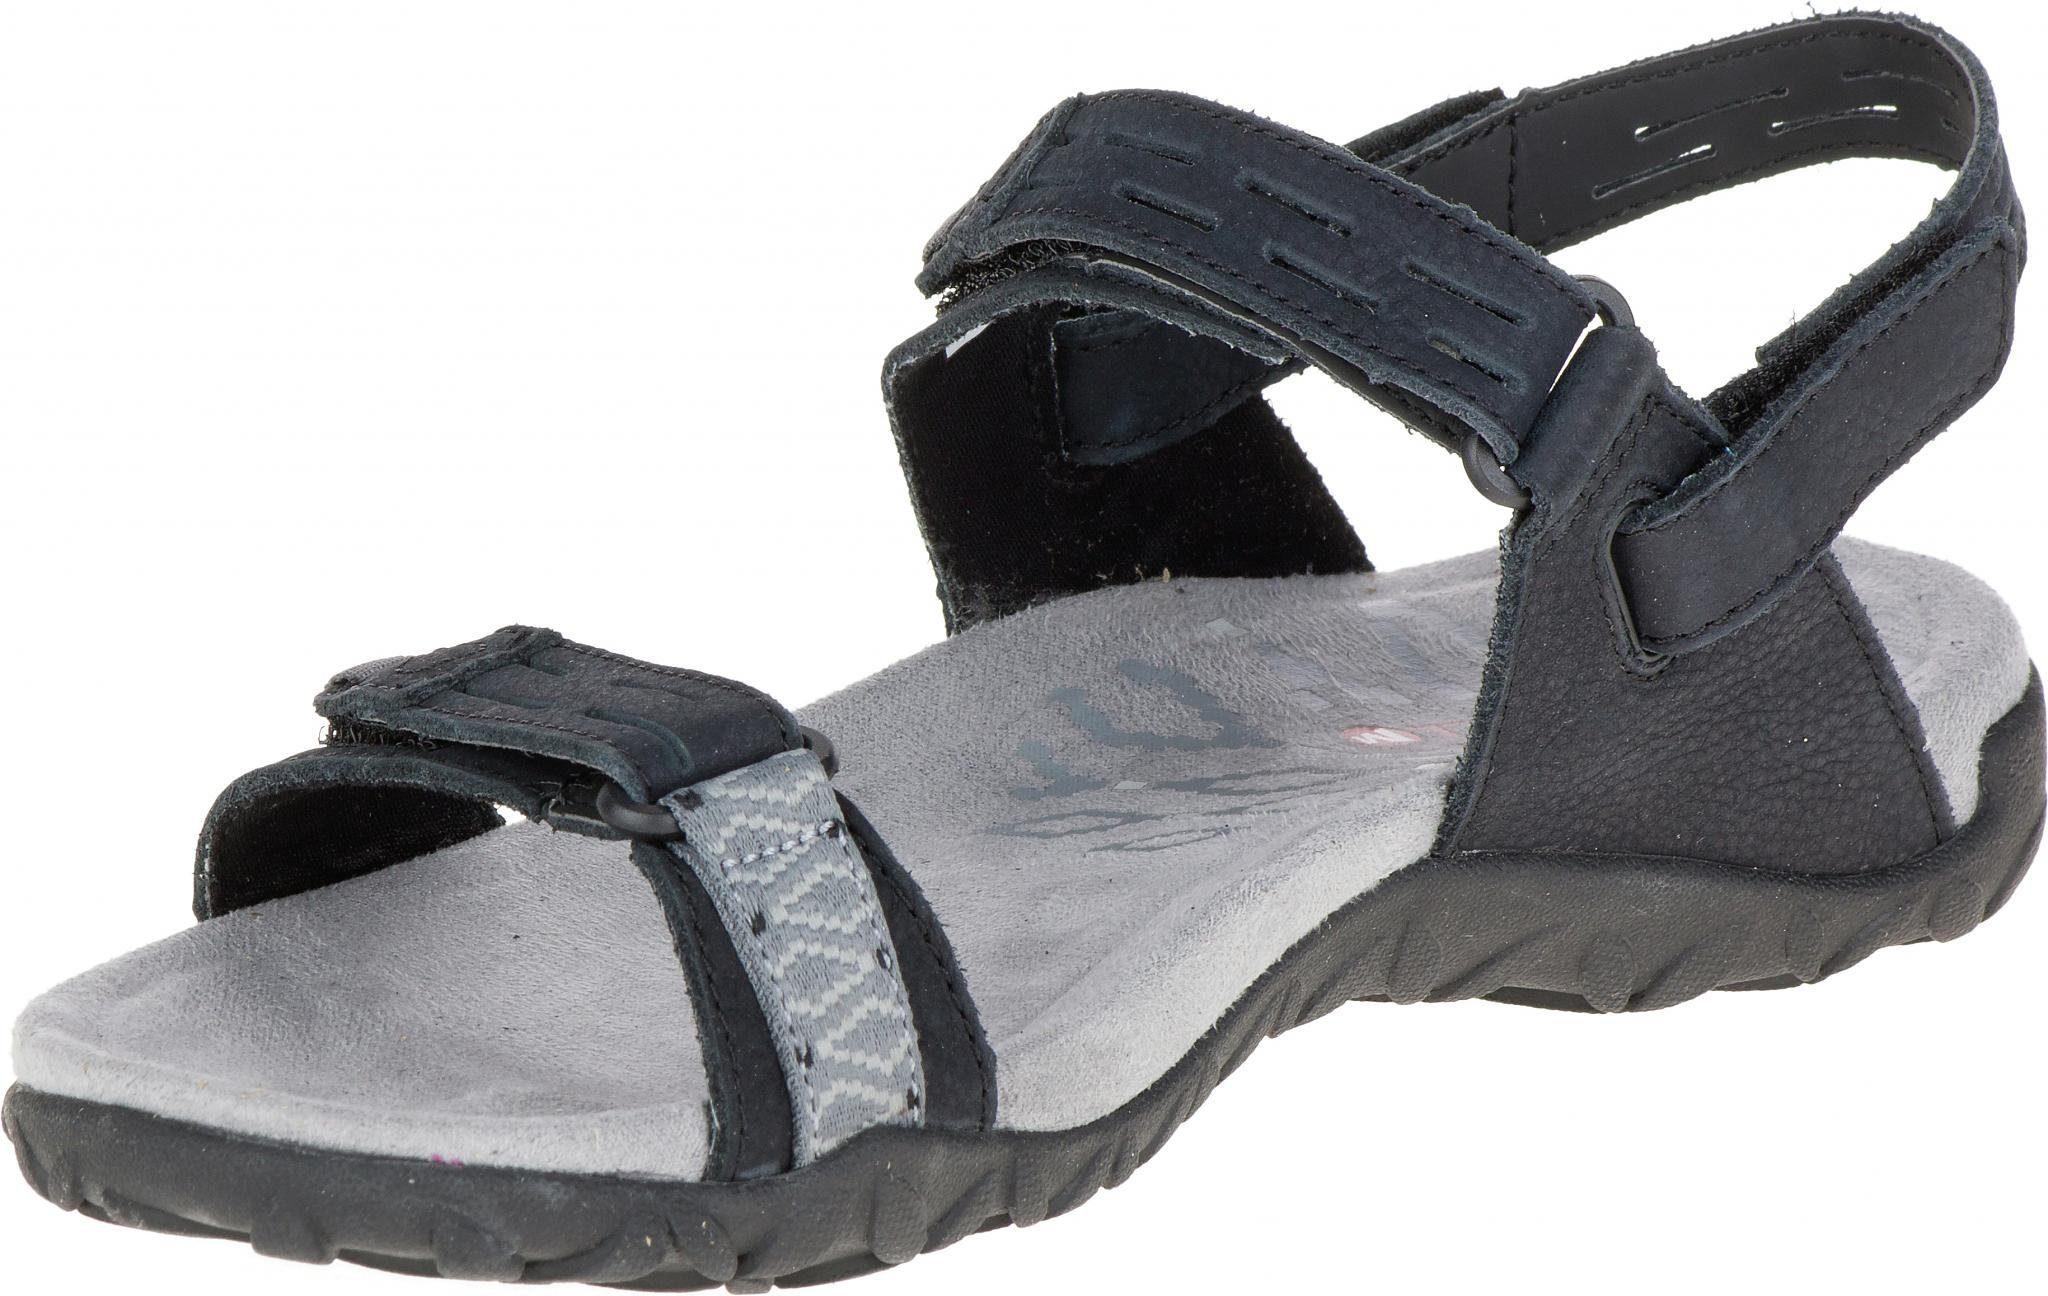 Merrell Sandale »Terran Strap 2 Shoes Women«